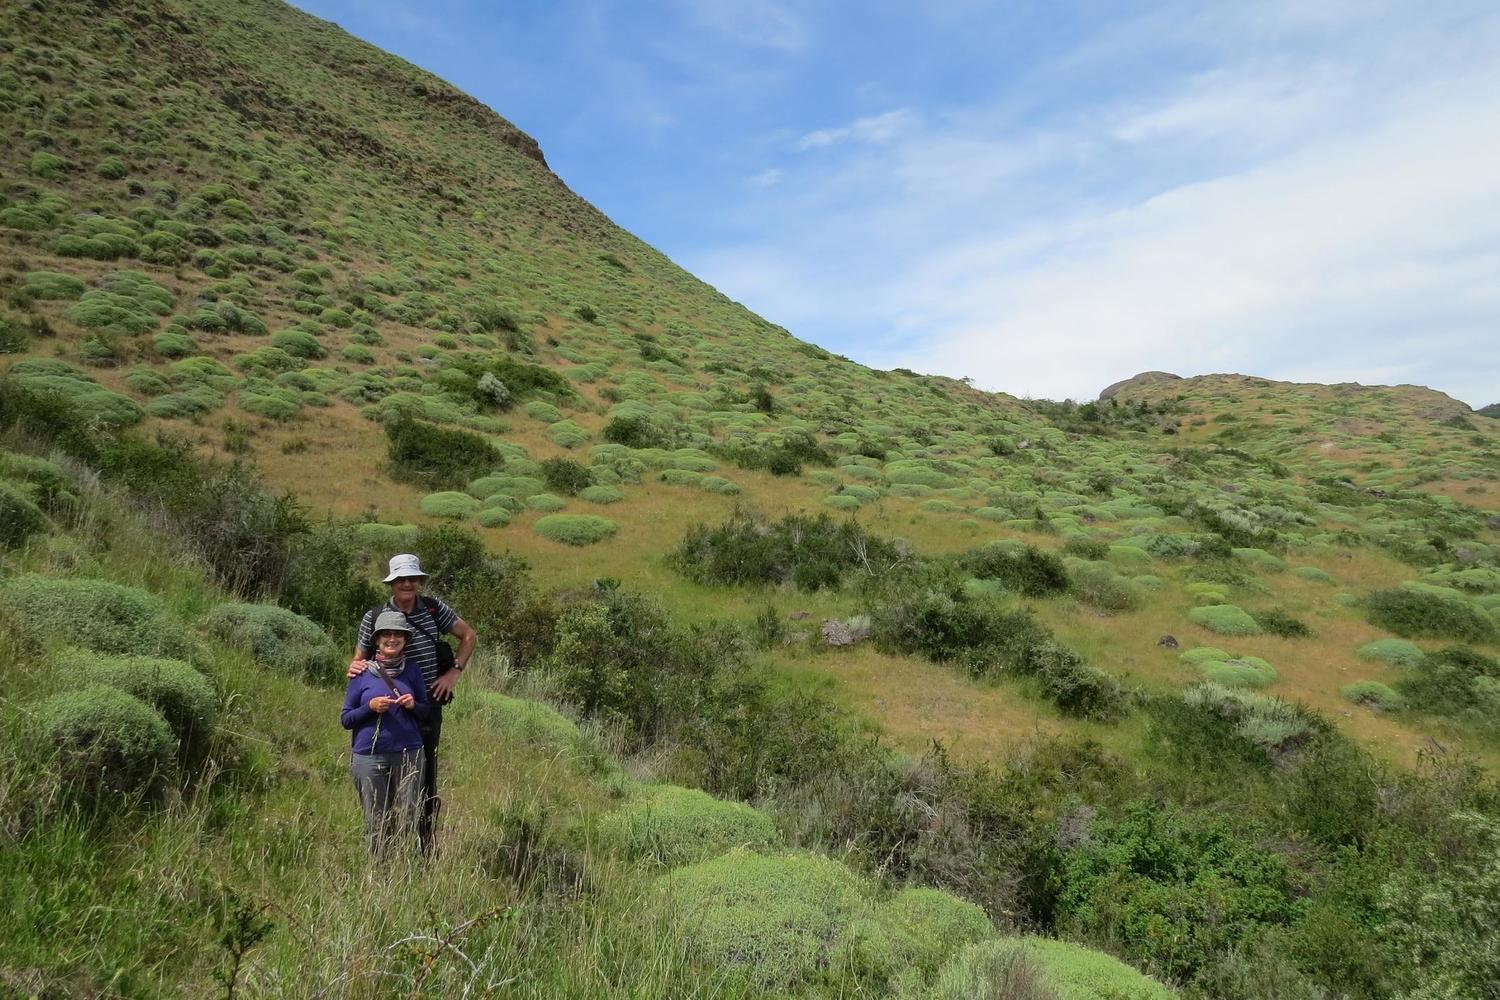 Two Pura clients on the Lagunas Atlas trail in Parque Patagonia